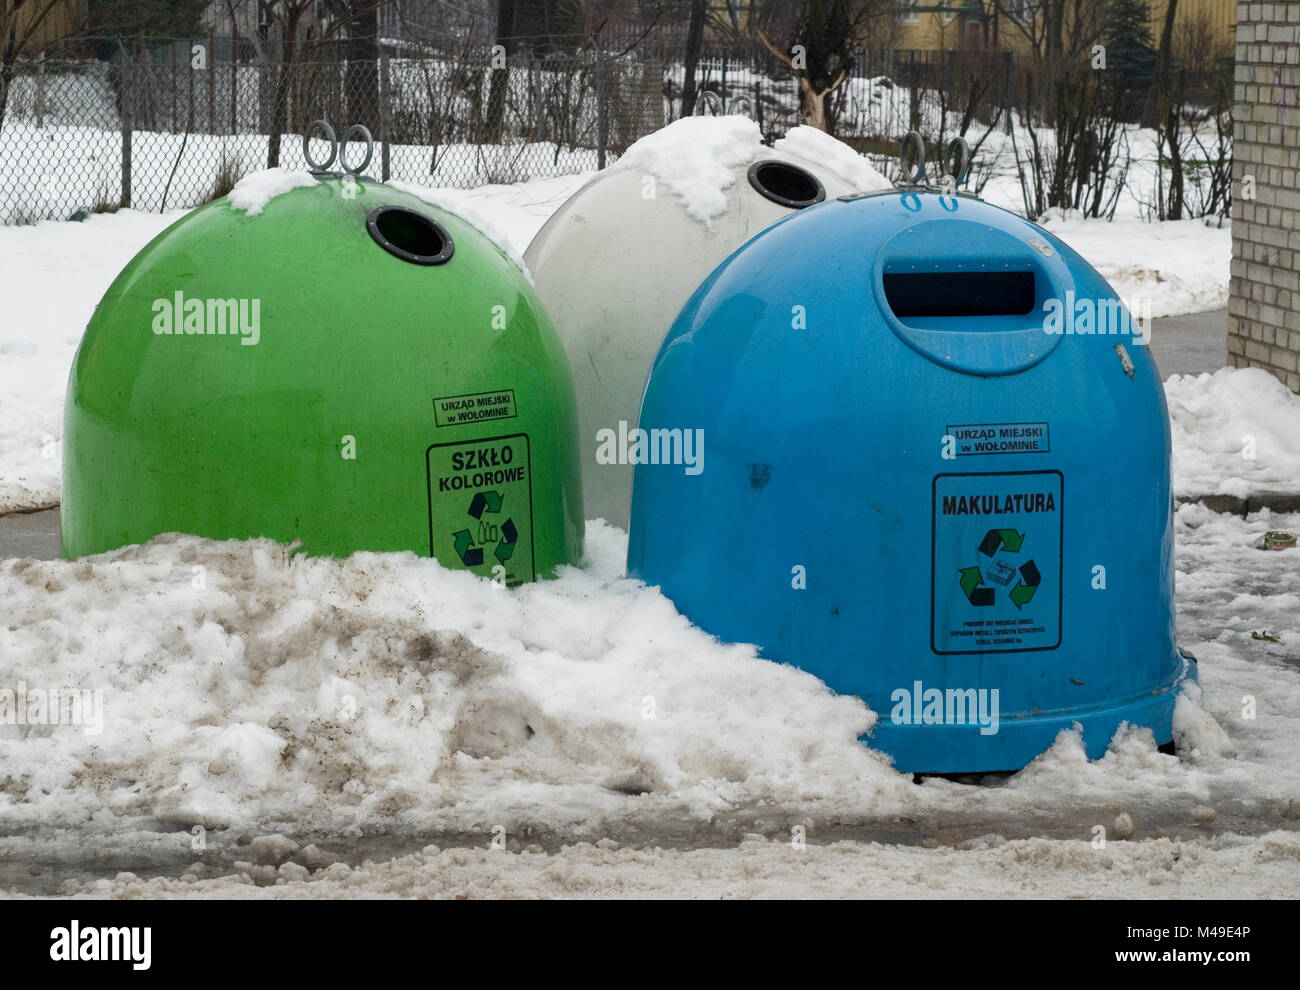 Recycling bins in the town of Wolomin in the eastern outskirts of Warsaw. January 2007 Stock Photo